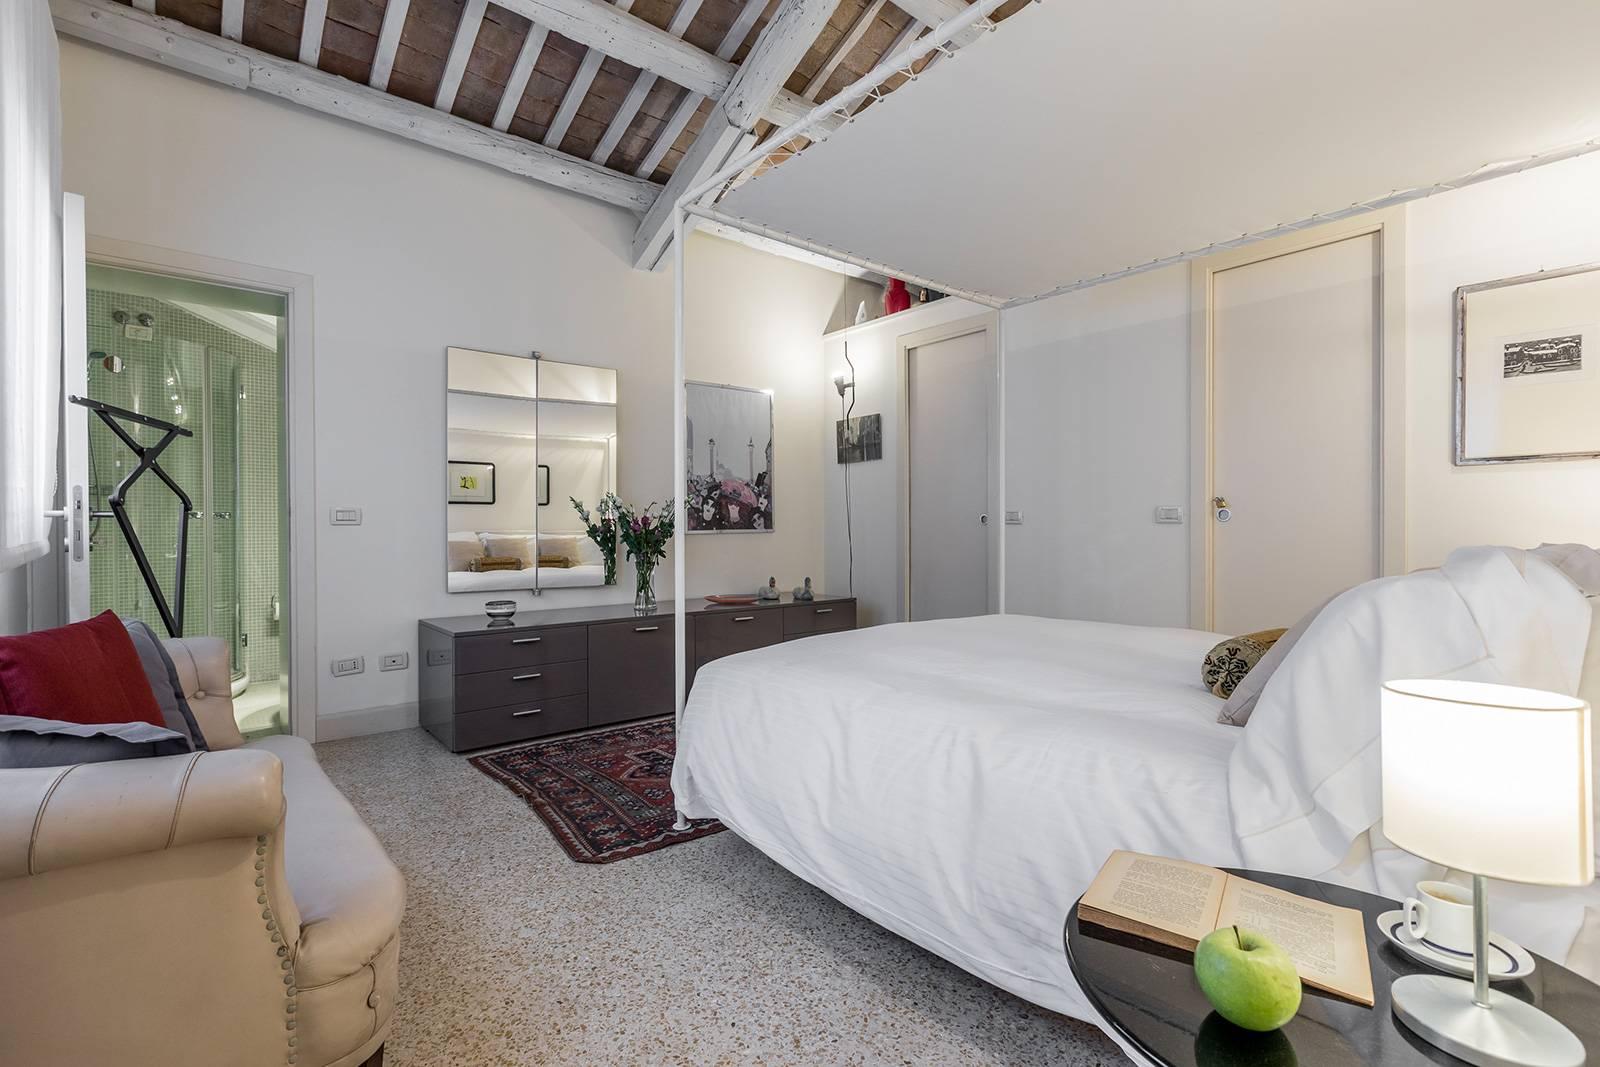 the main bedroom with en-suite bathroom is very spacious and well furnished